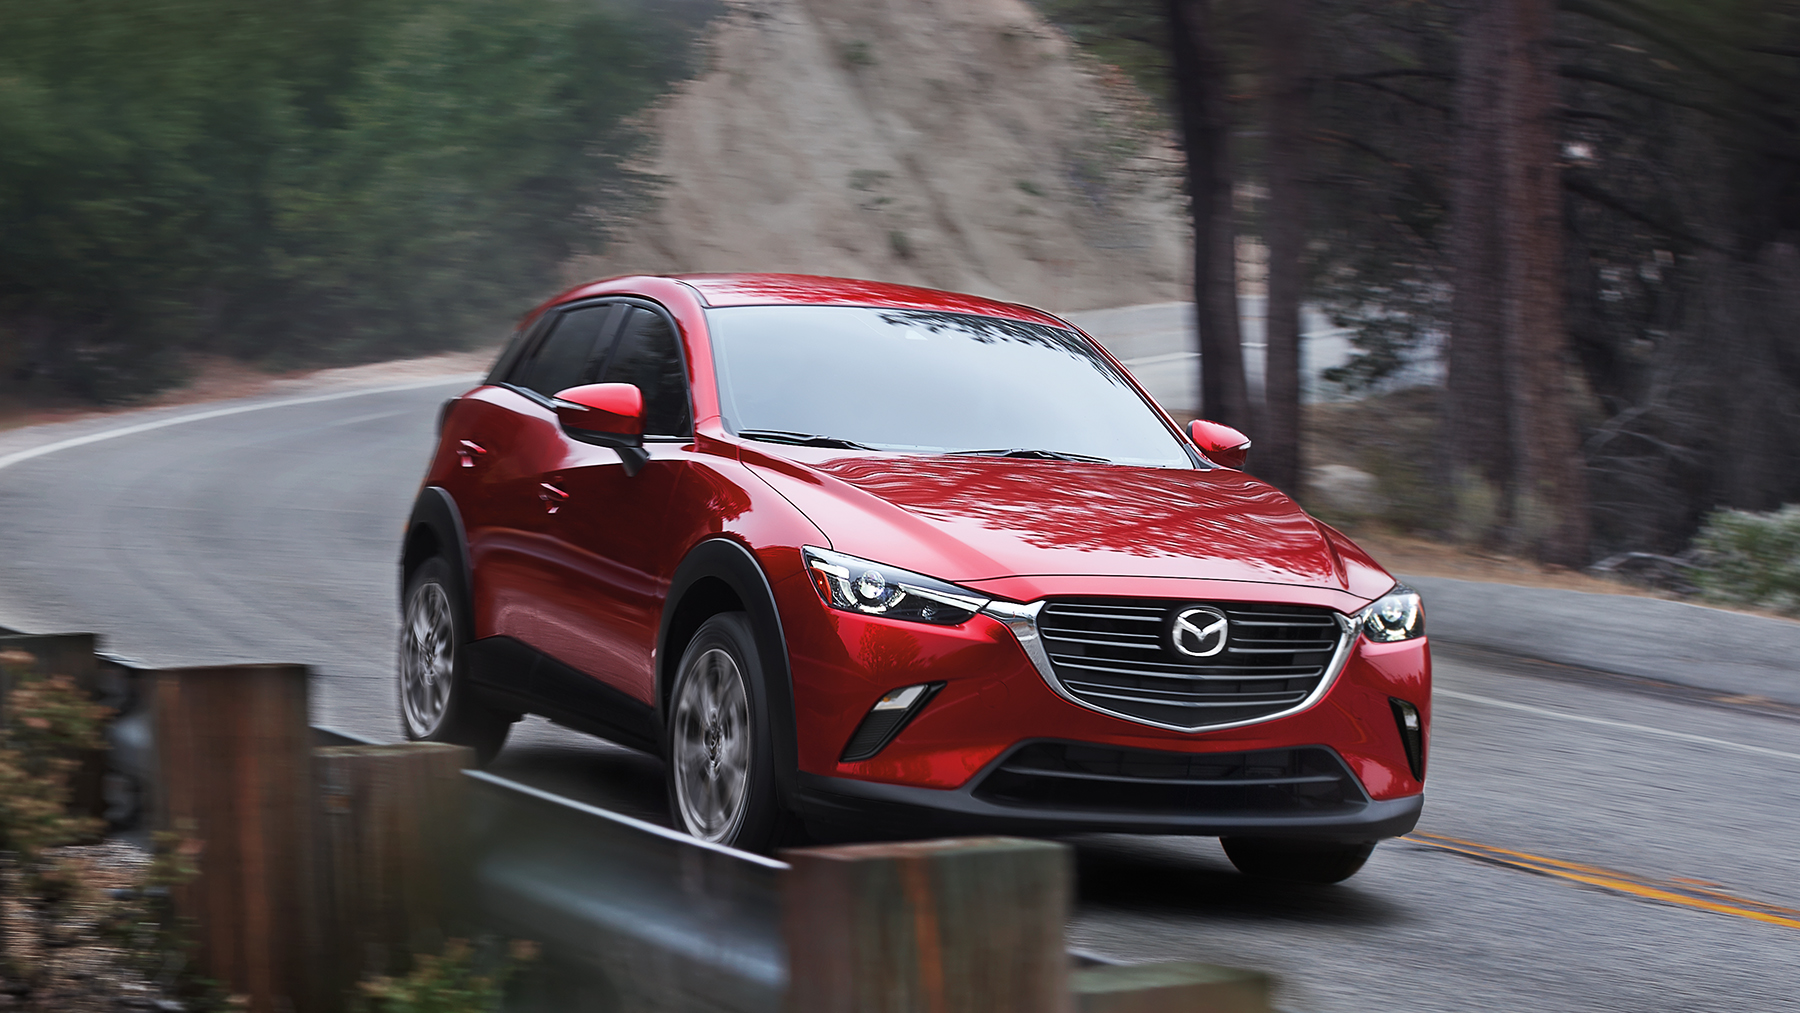 New 2021 Mazda CX-3 for sale near Orlando, FL